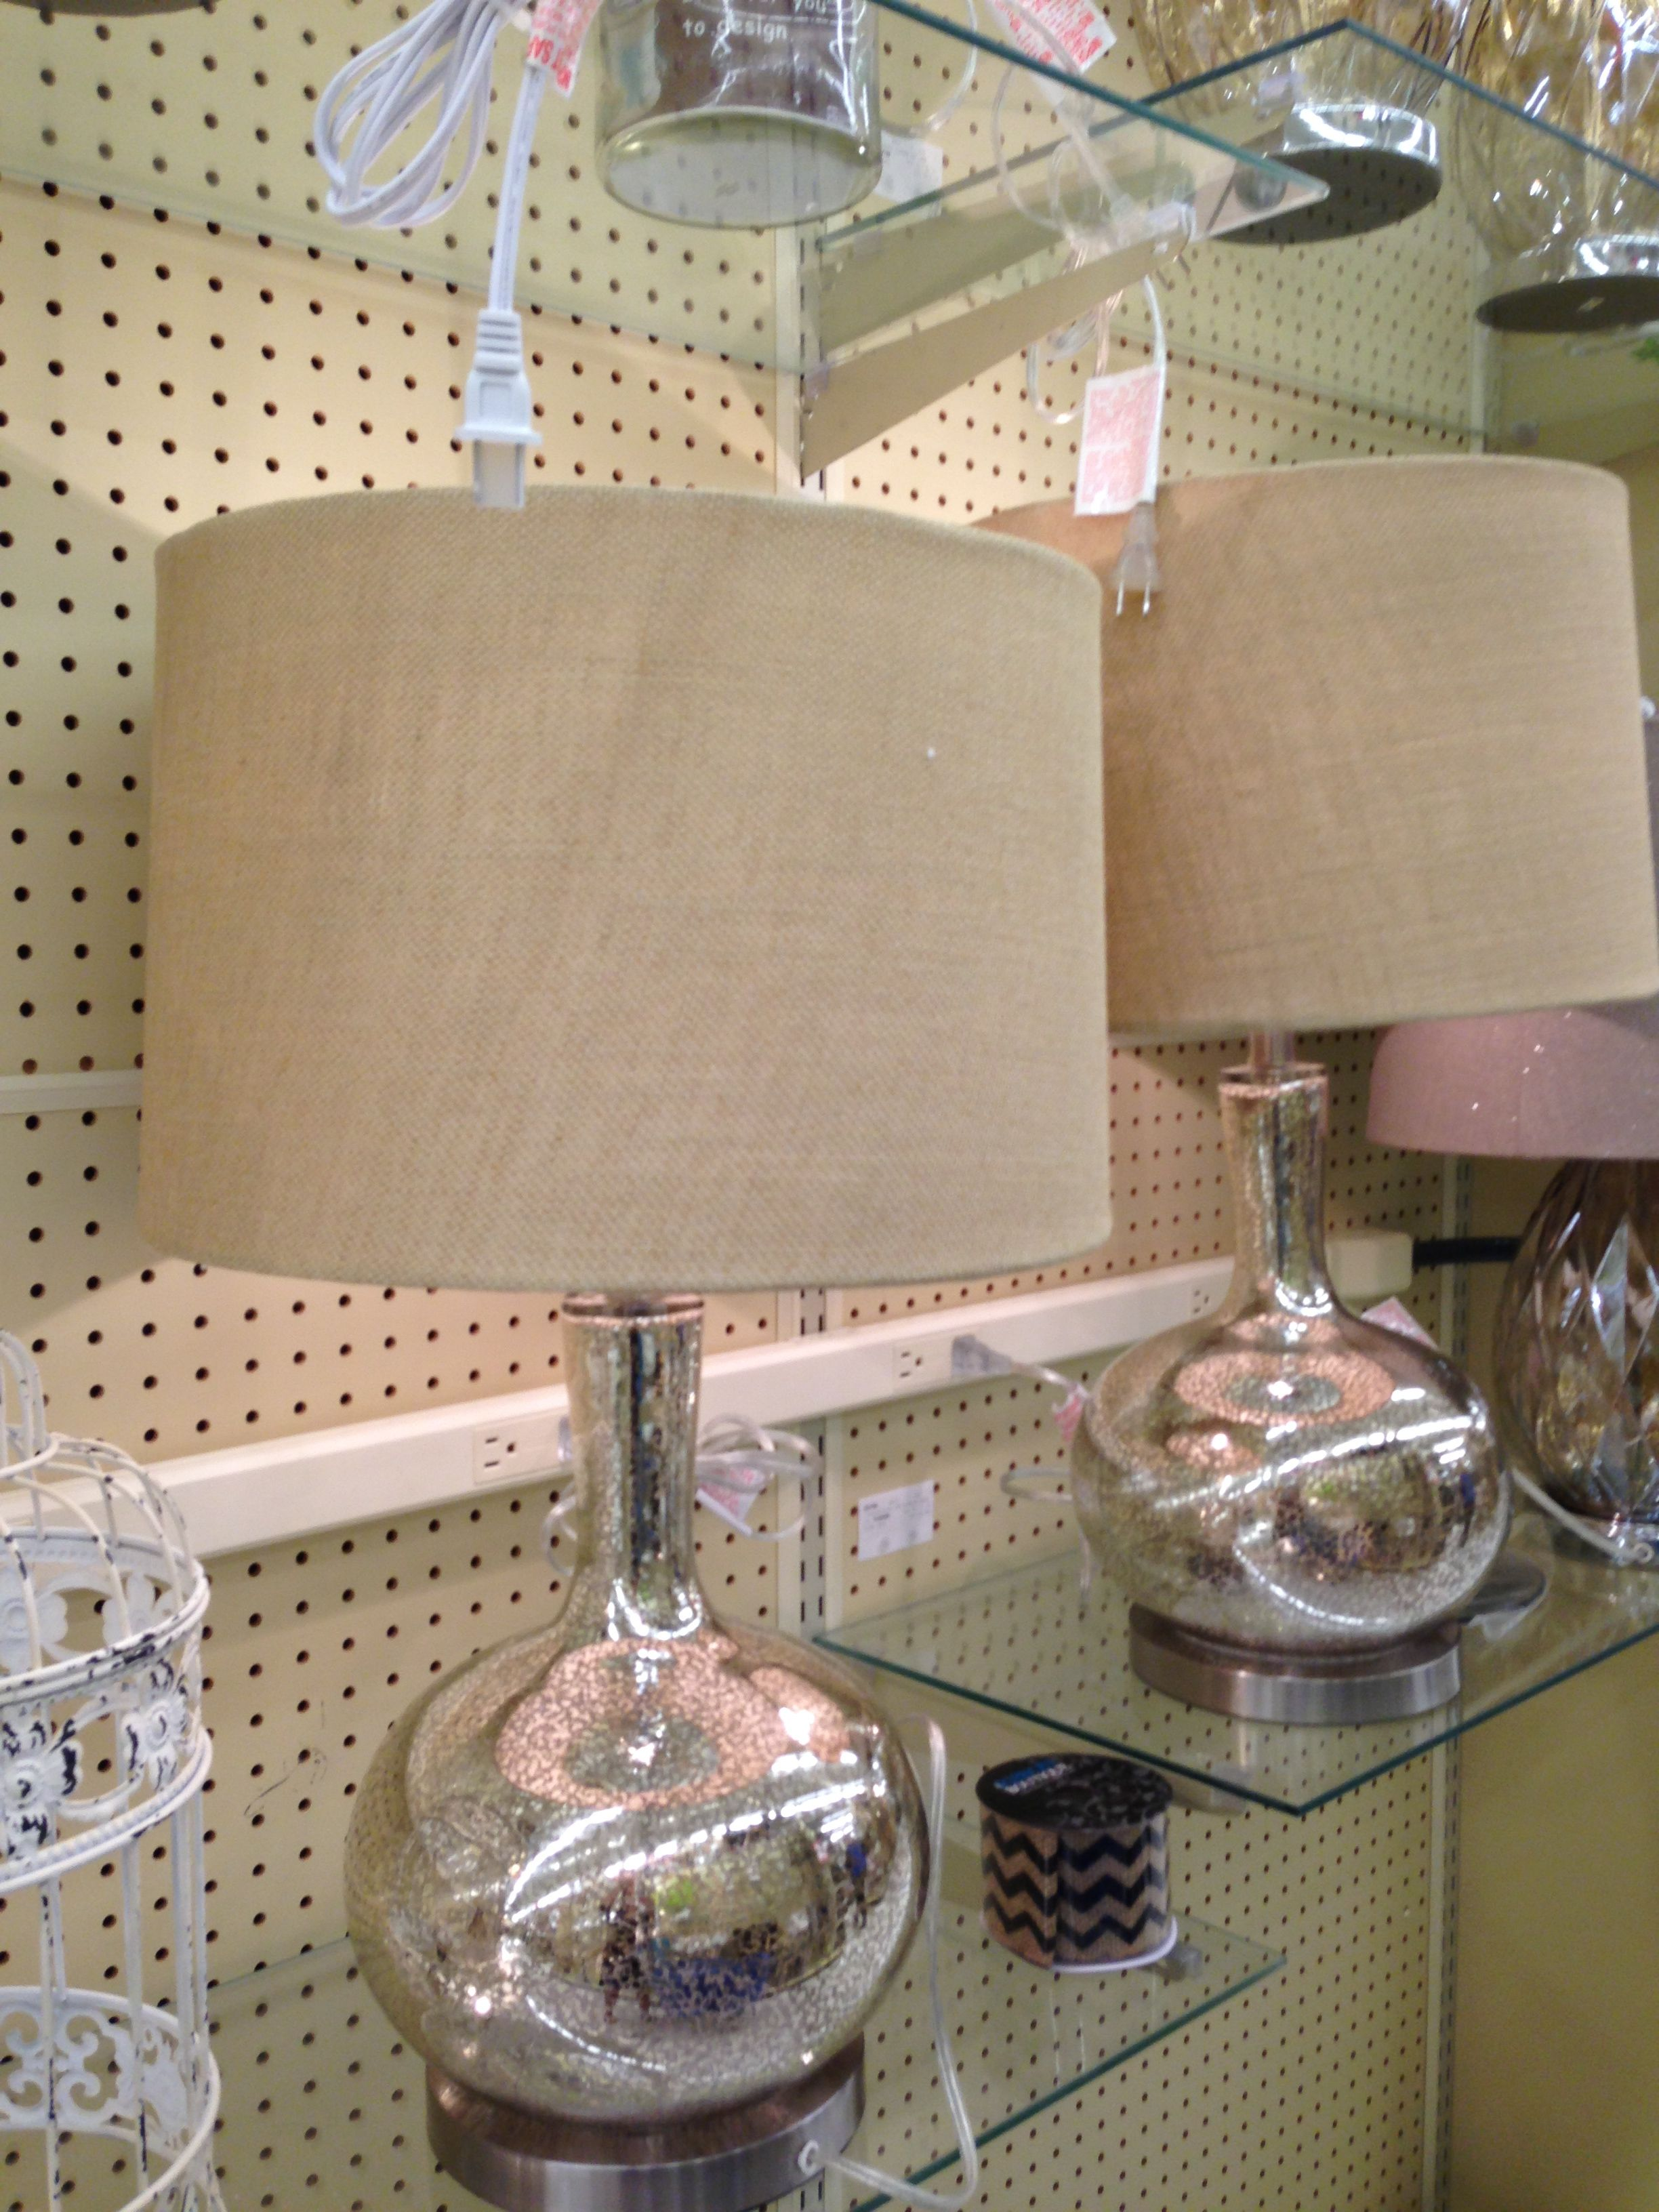 Lamps From Hobby Lobby Blue Table Lamp Home Decor Decor